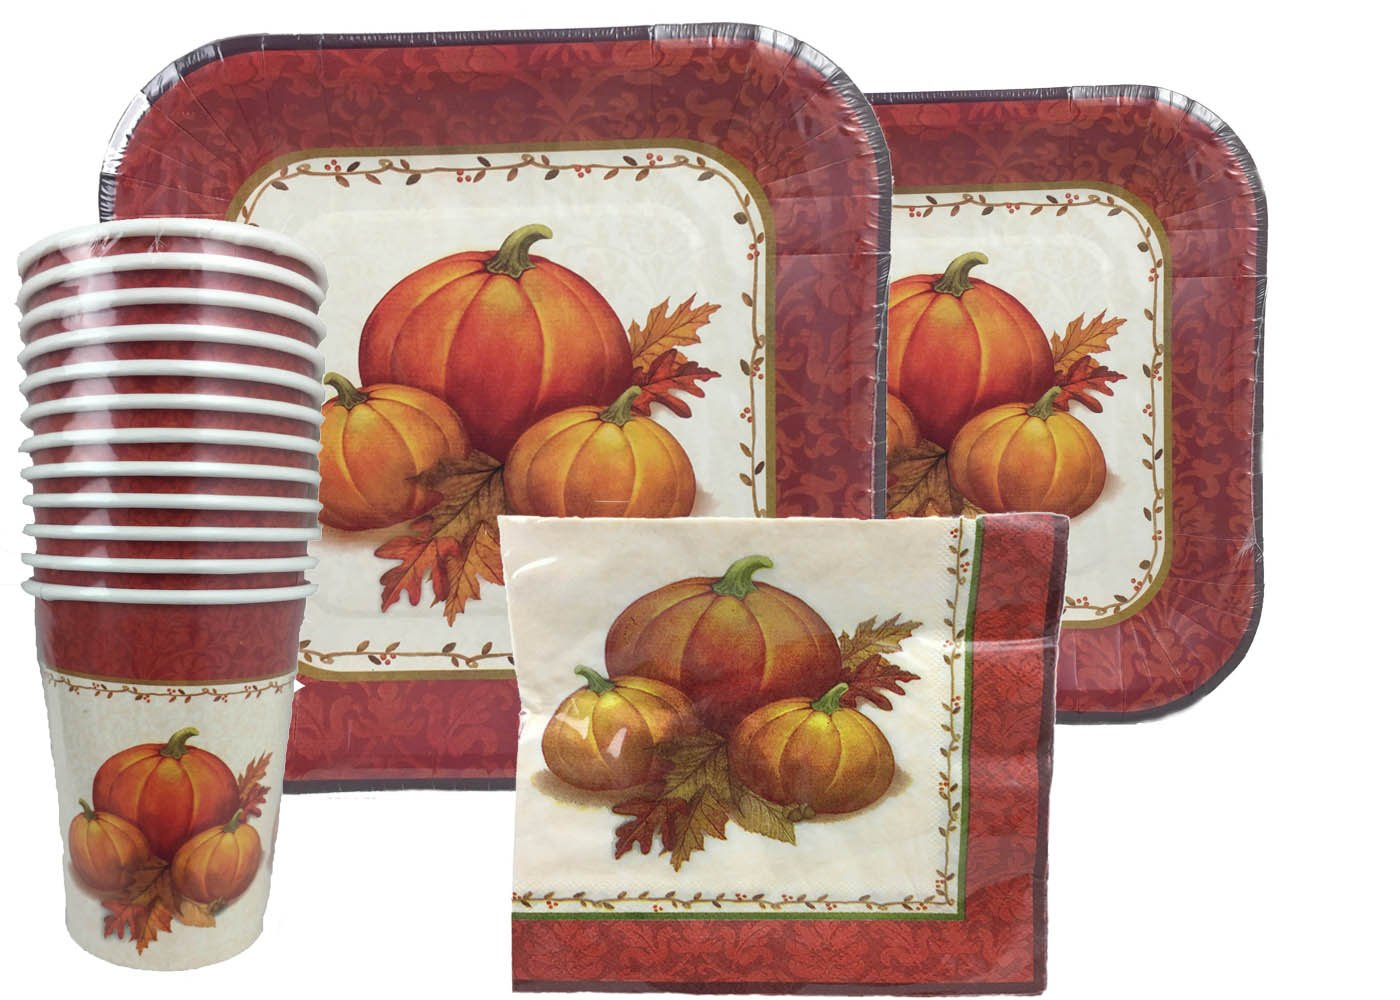 Thanksgiving Tableware Kits  sc 1 st  Thanksgiving Wikii & Thanksgiving Tableware Kits | Thanksgiving Wikii